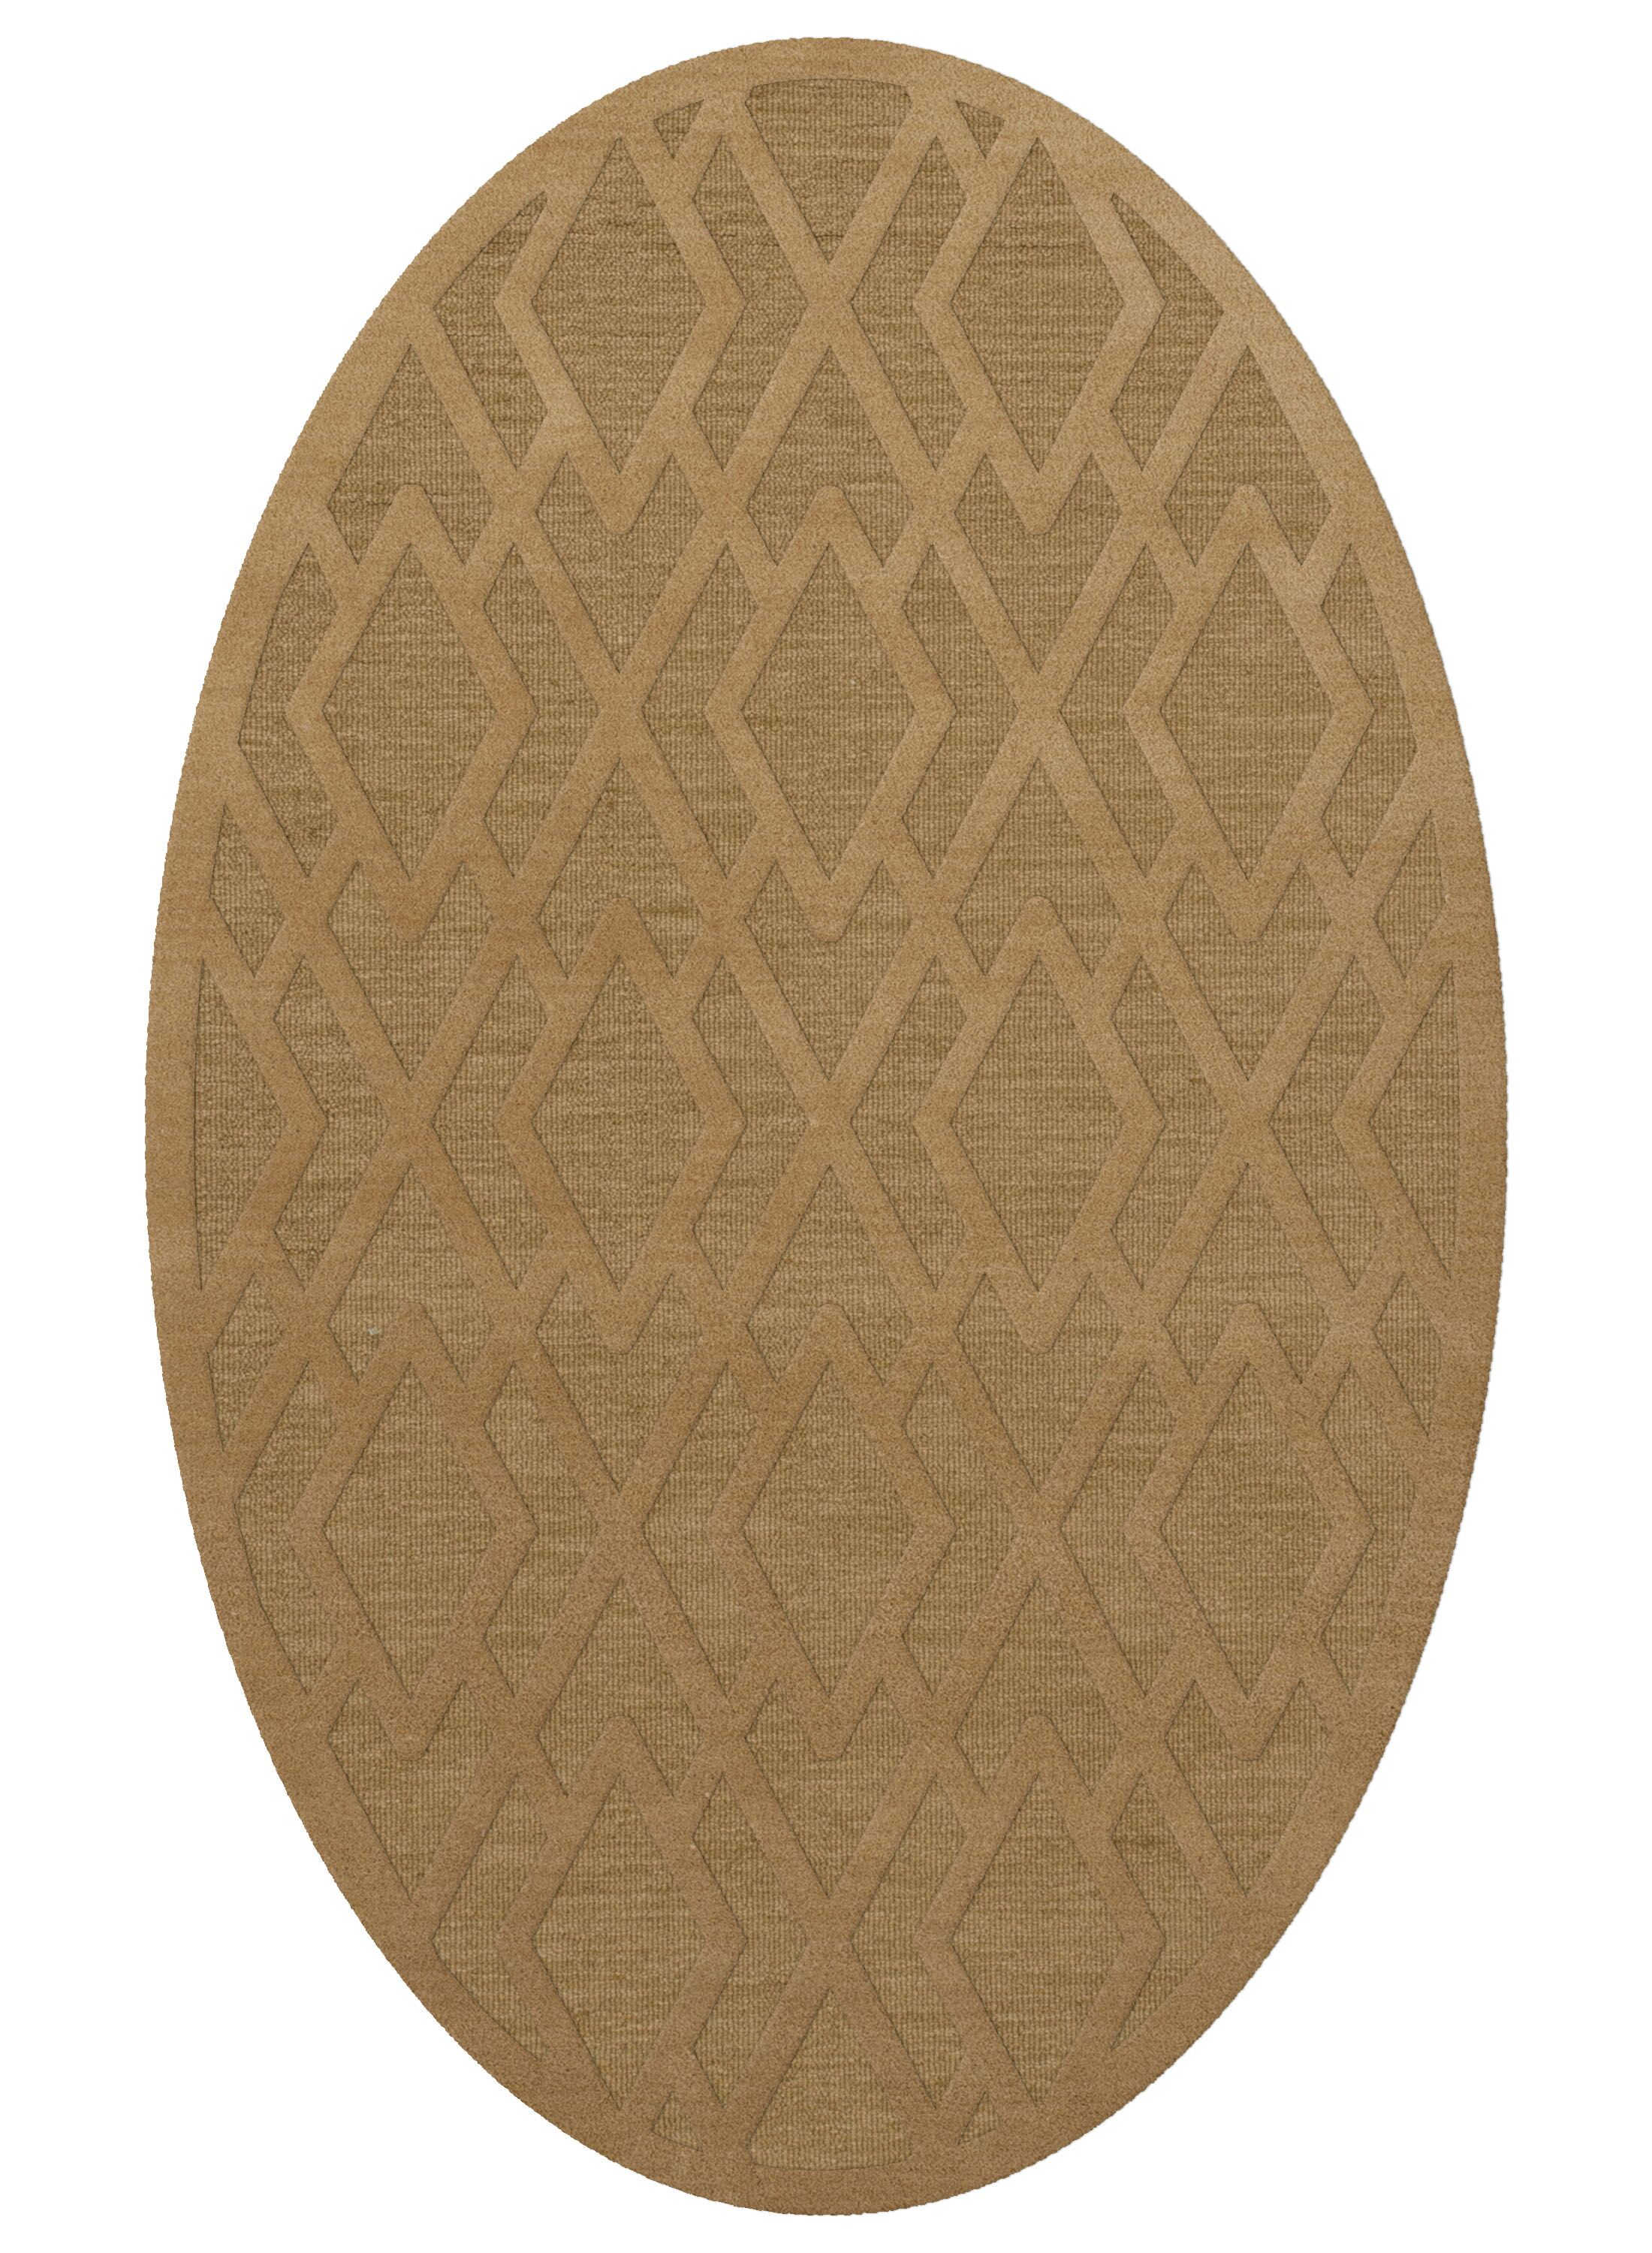 Dover Tufted Wool Wheat Area Rug Rug Size: Oval 12' x 15'